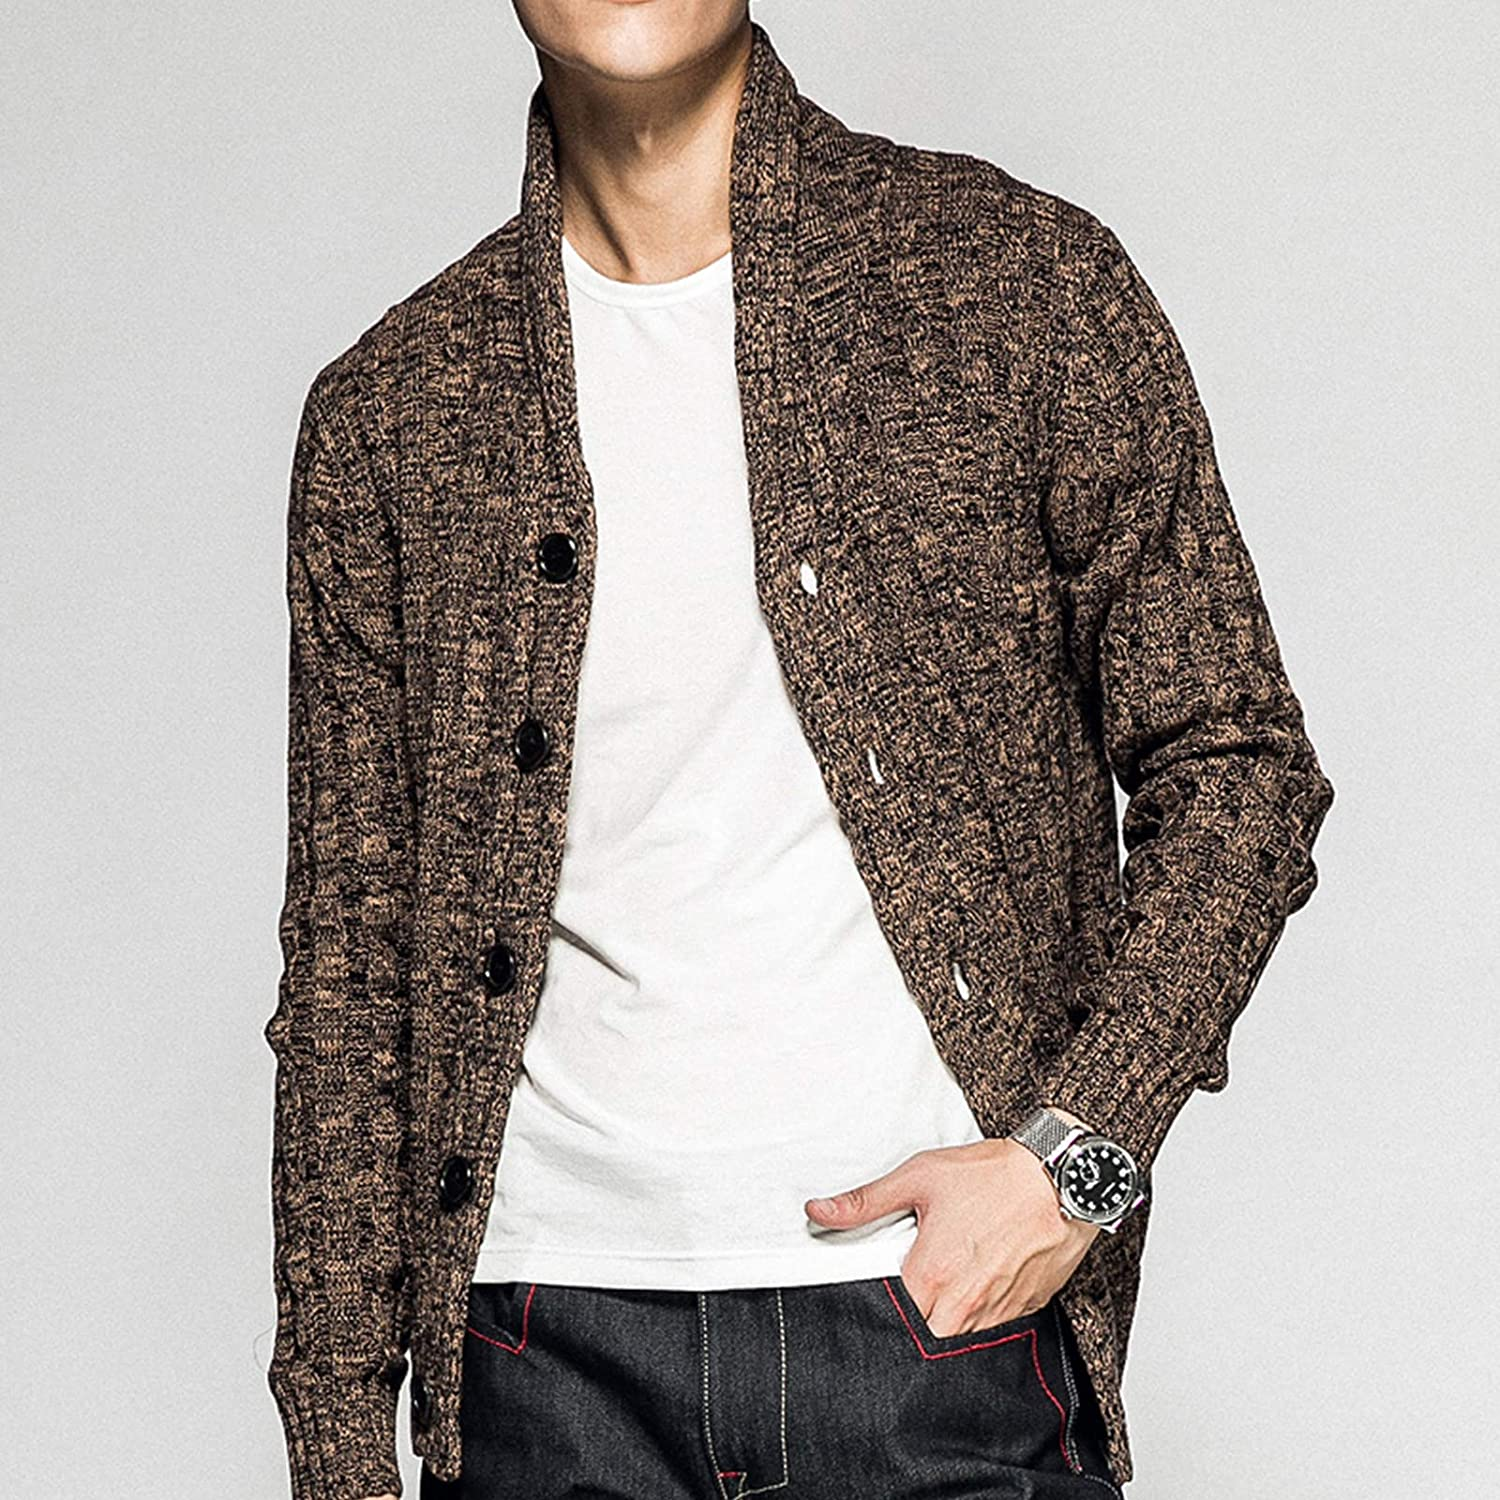 n&d Men's Long-Sleeved Button Knit Cardigan Sweater Loose fit Trend Thickening